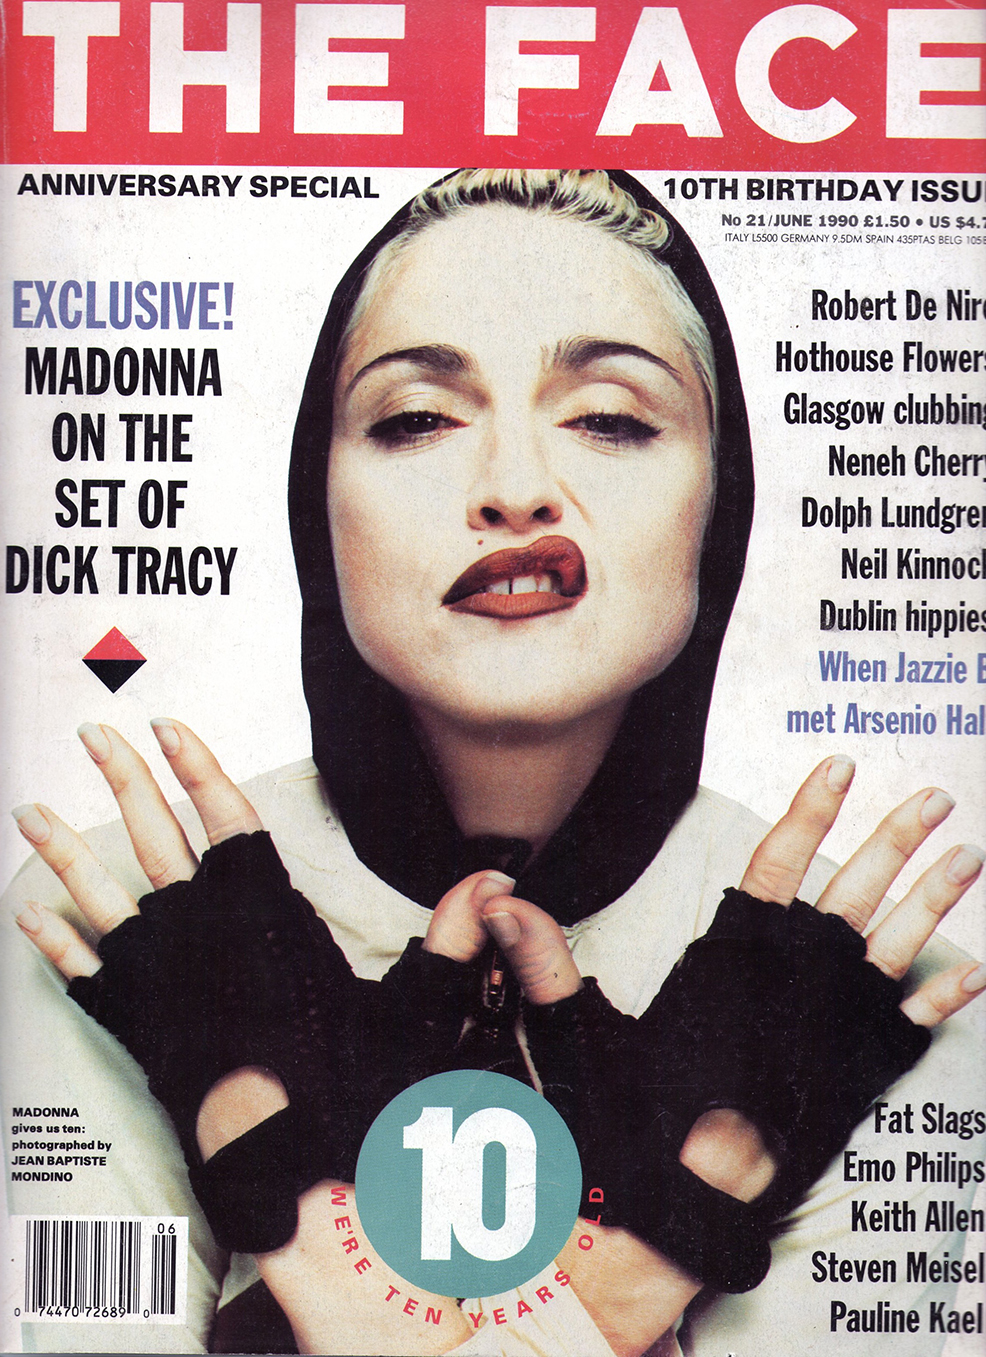 The Face, la revista de moda y subculturas de los 80 y 90's